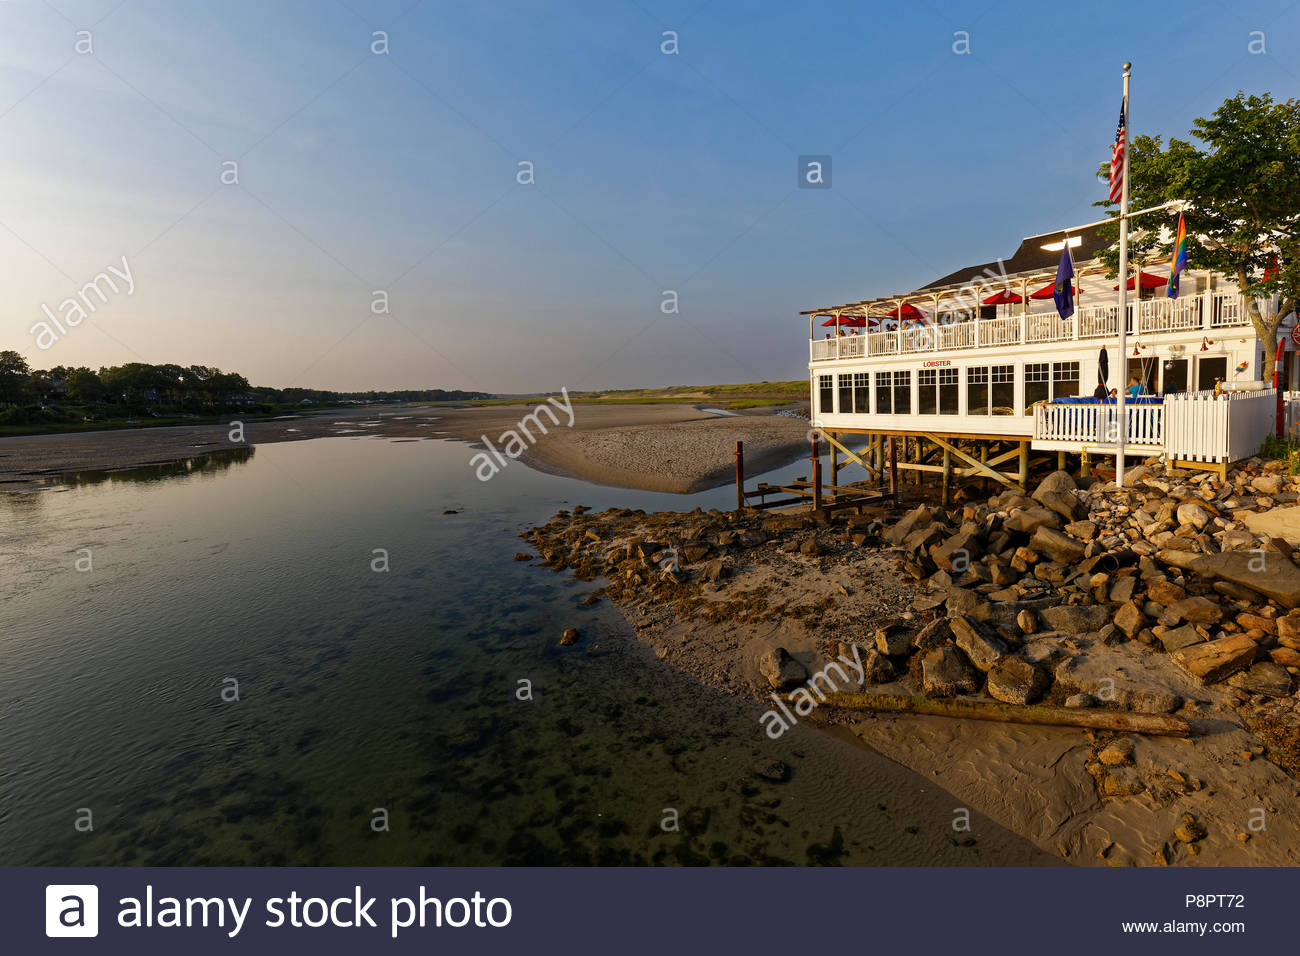 Restaurant on the Oqunquit River, Ogunquit, ME, USA - Stock Image